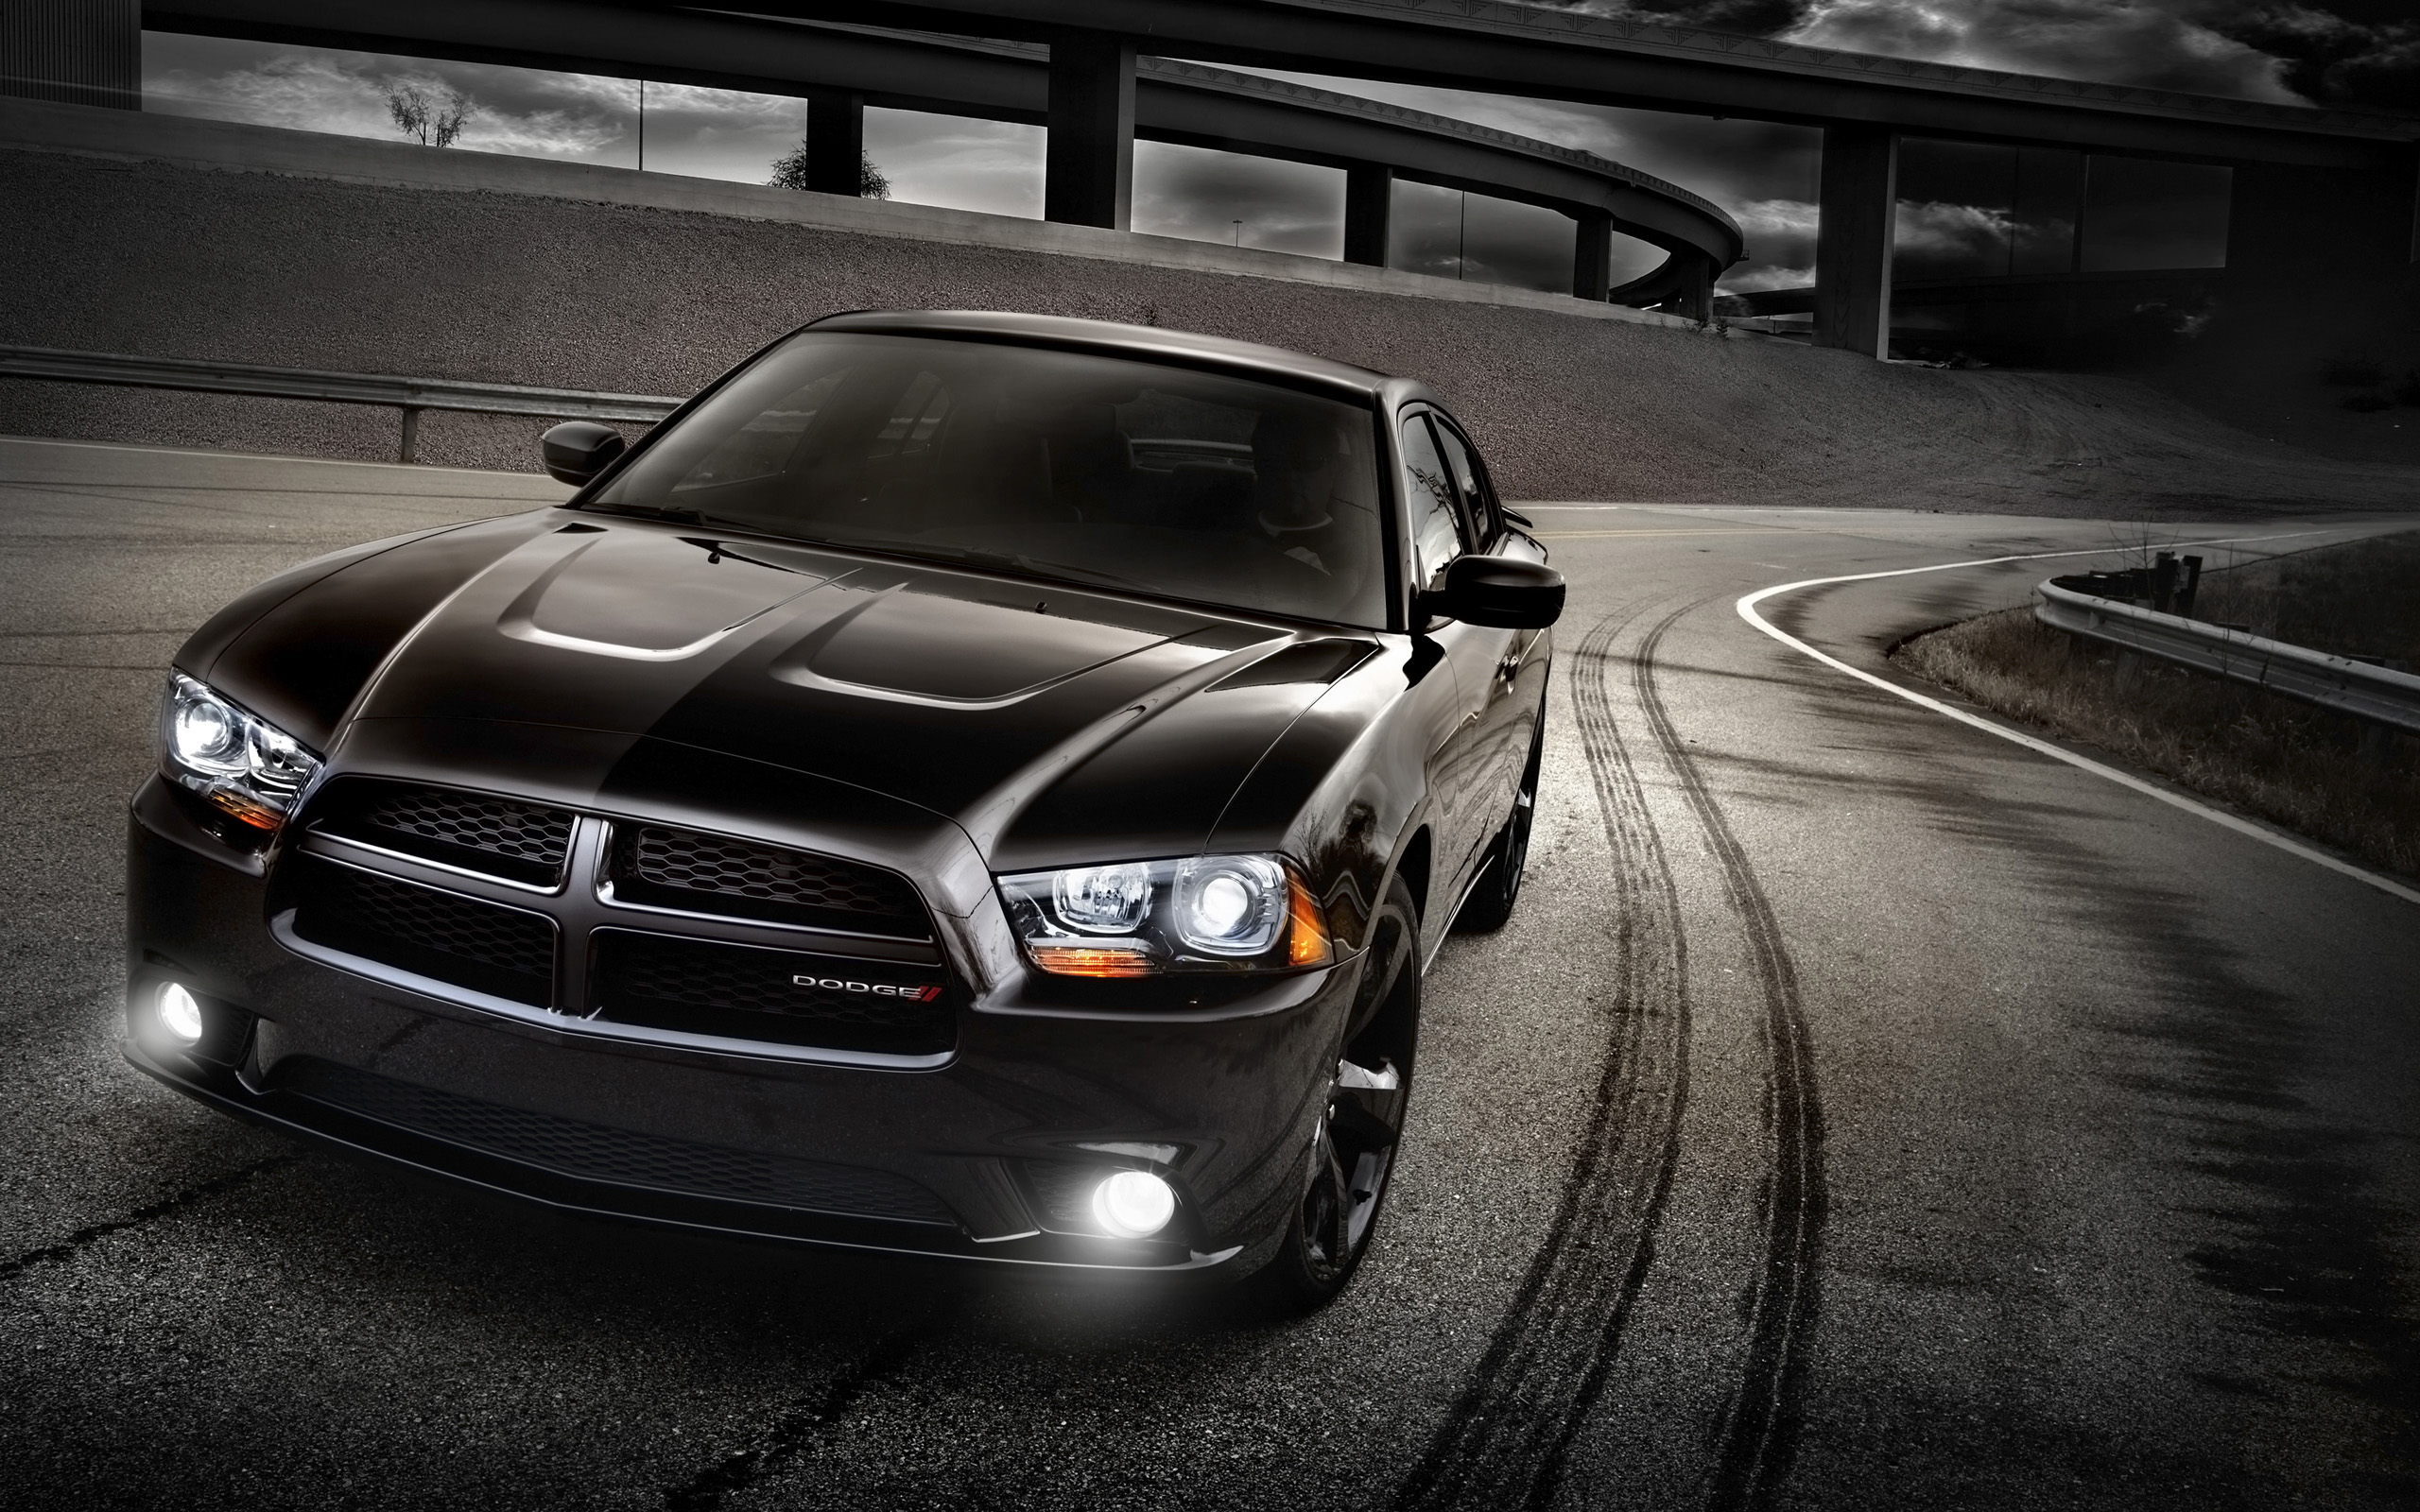 2014 Dodge Charger Blacktop Wallpaper Hd Car Wallpapers Id 4355